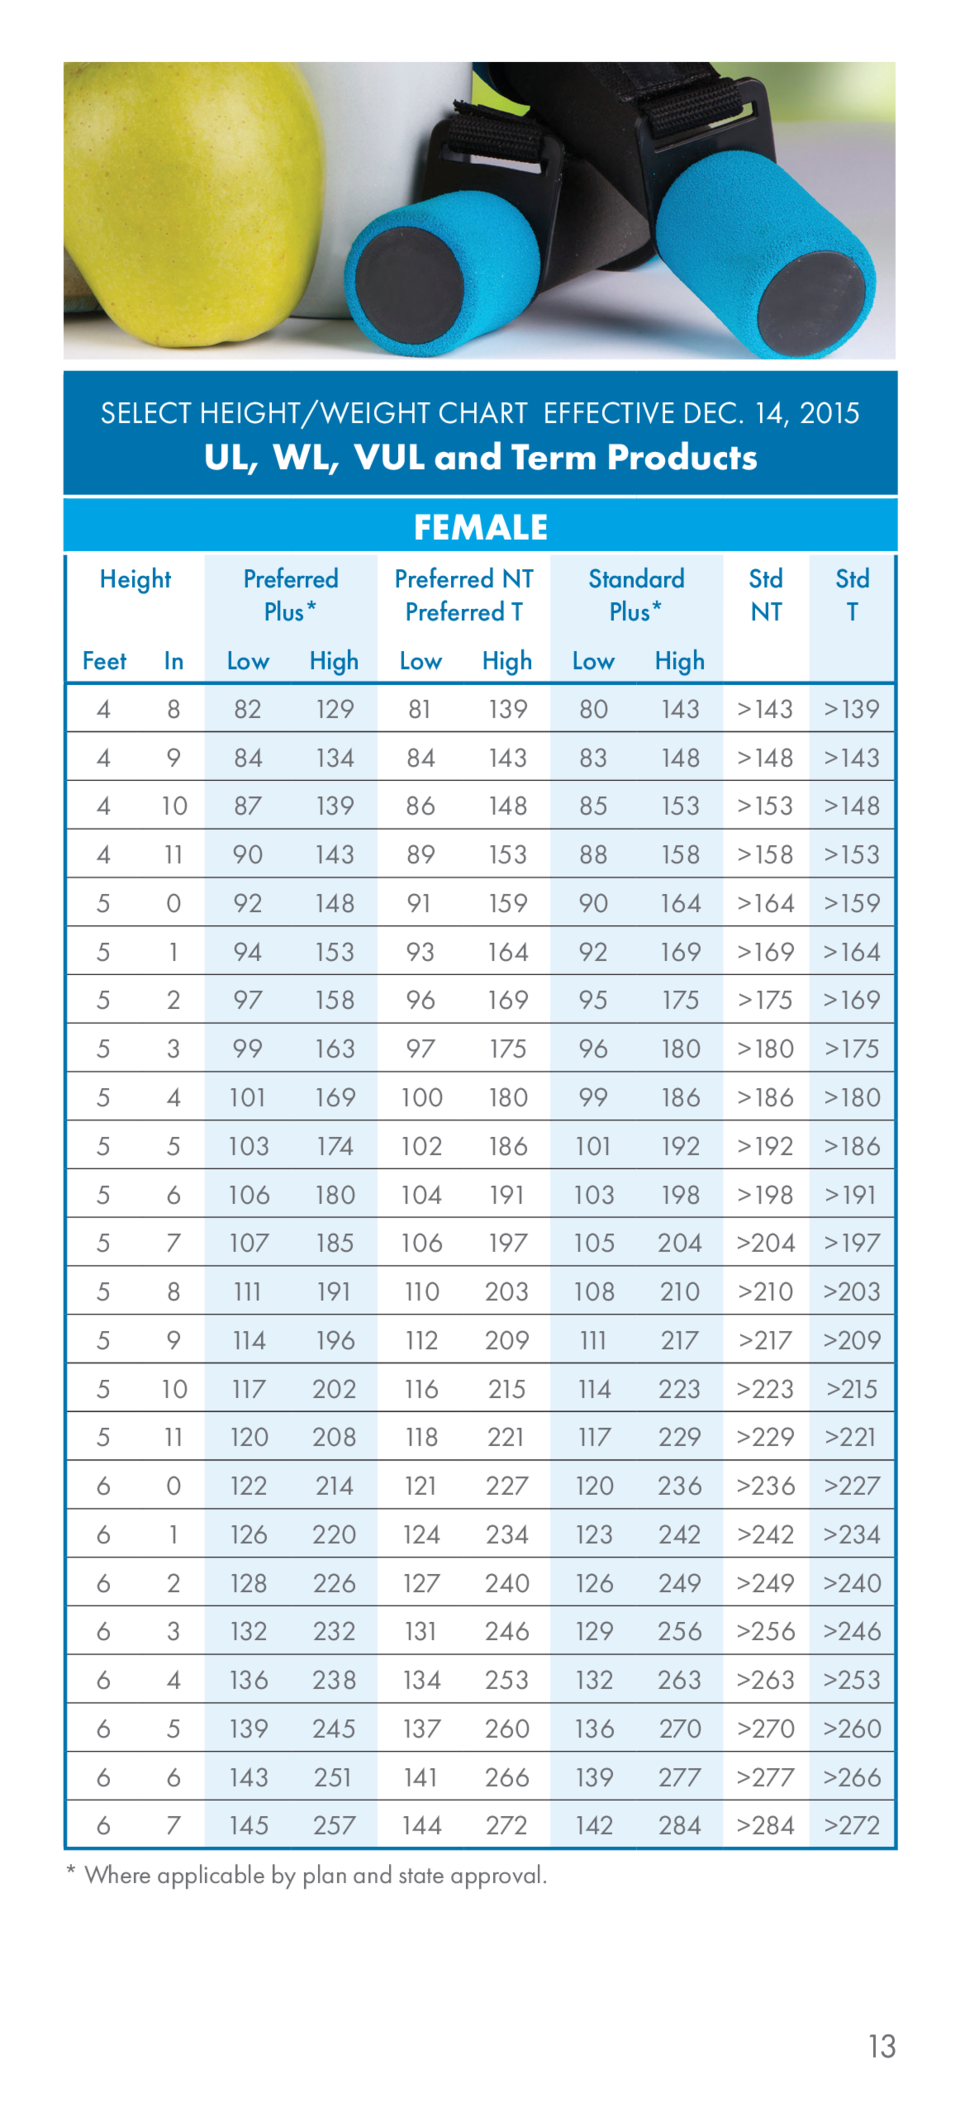 Aig the life insurance pro select height weight chart effective dec 14 2015 select height weight chart effective dec nvjuhfo Choice Image